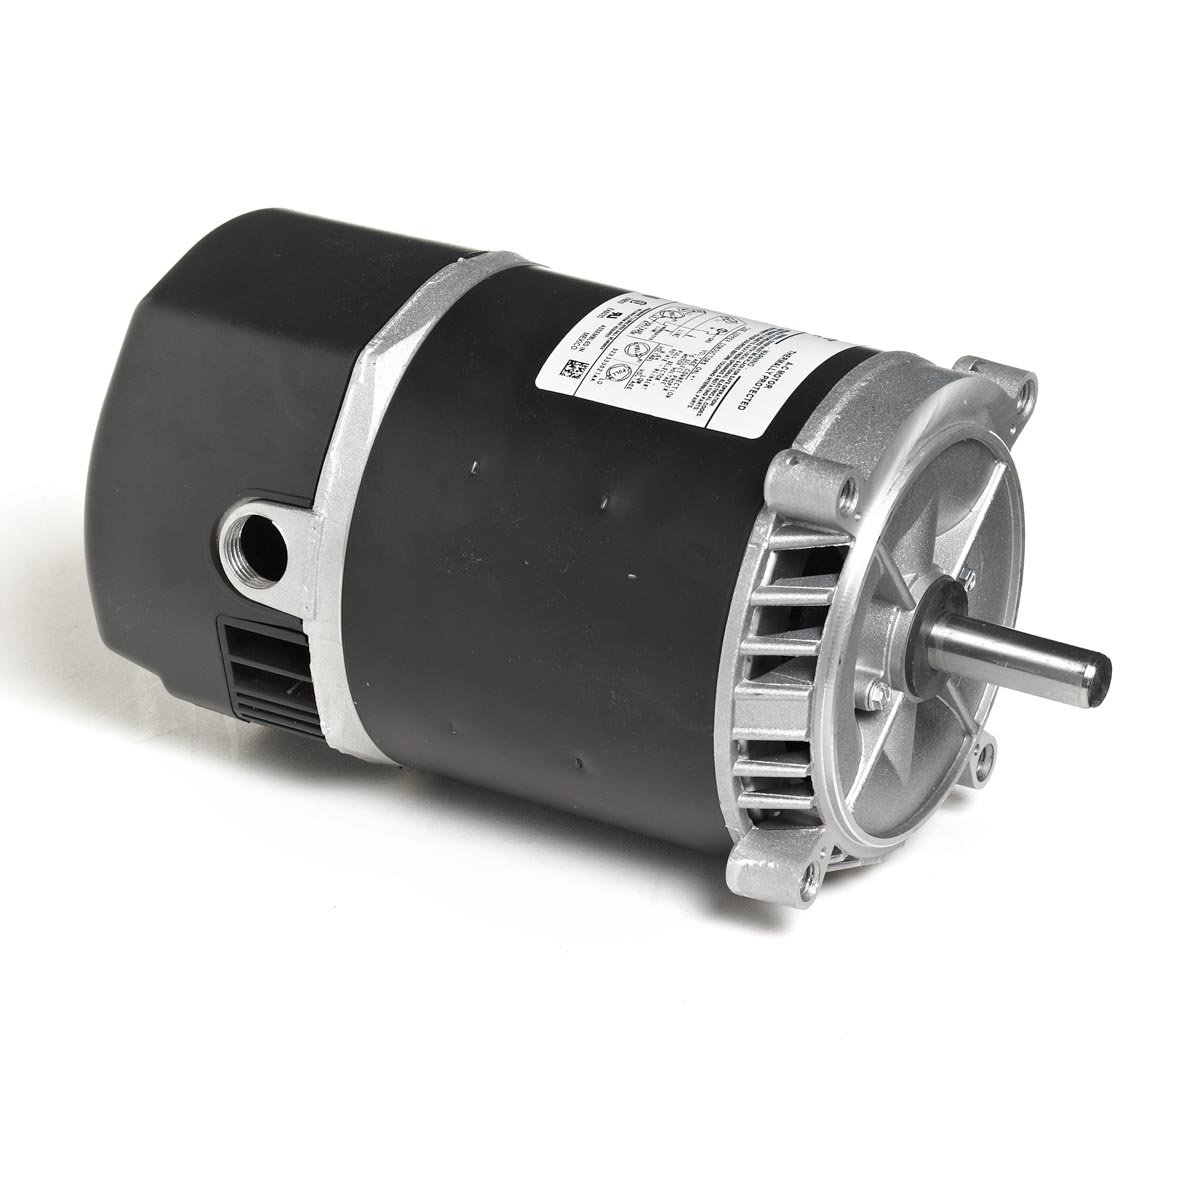 Marathon 5KC33MN2889X Two-Compartment Jet Pump Motor, 1 Phase, Open Drip Proof, C-Face, Ball Bearing, 3/4 hp, 3600 RPM, 1 Speed, 115/230 VAC, 56J Frame, Capacitor Start/Run